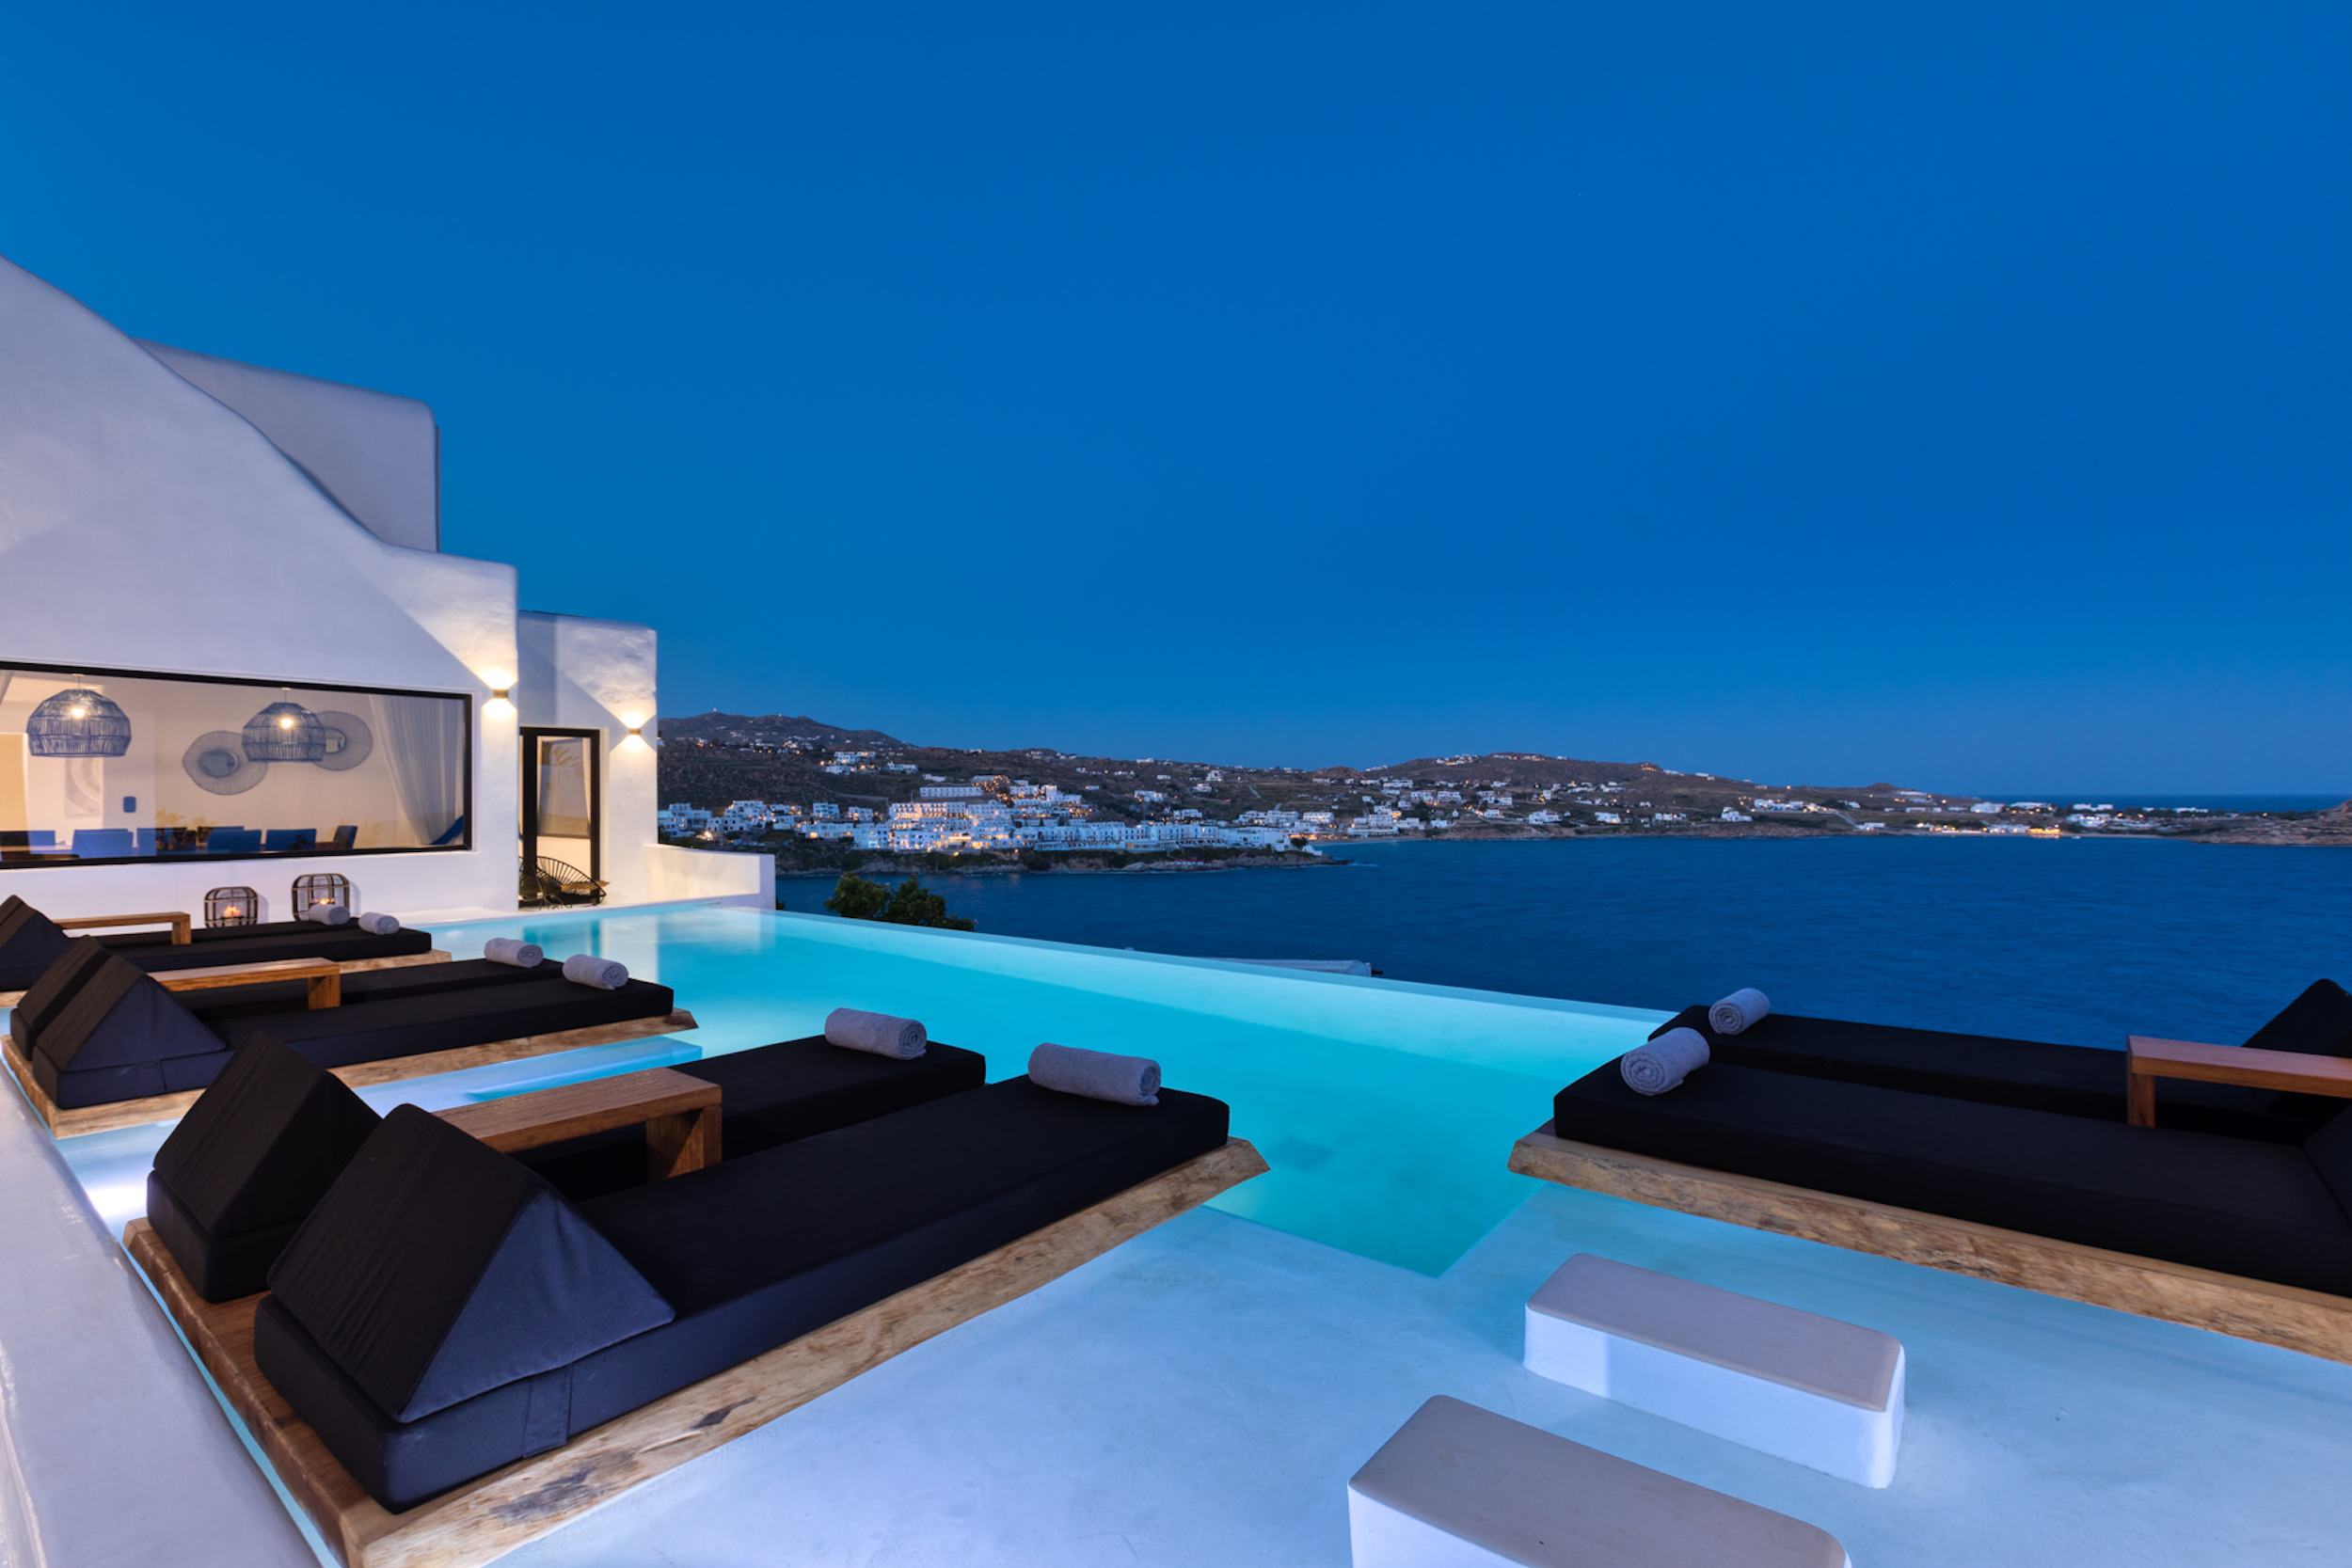 Our Latest From Mykonos!